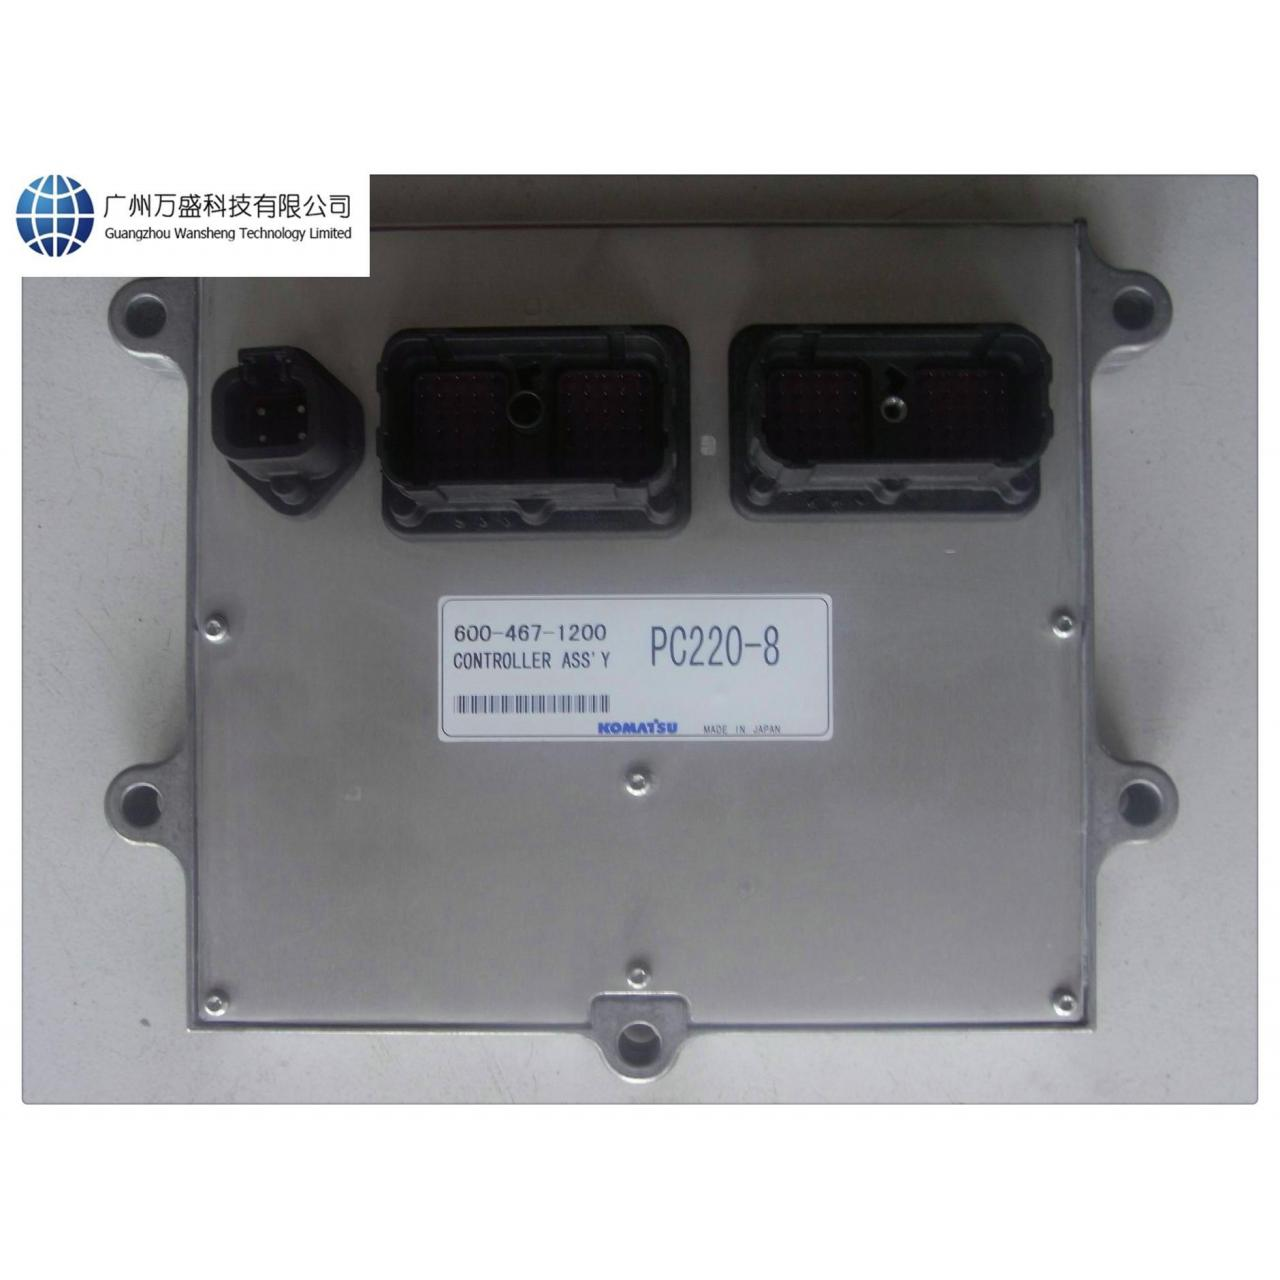 China 600-467-1200 Komatsu PC220-8 Controller Ass'y Engine Control Computer wholesale